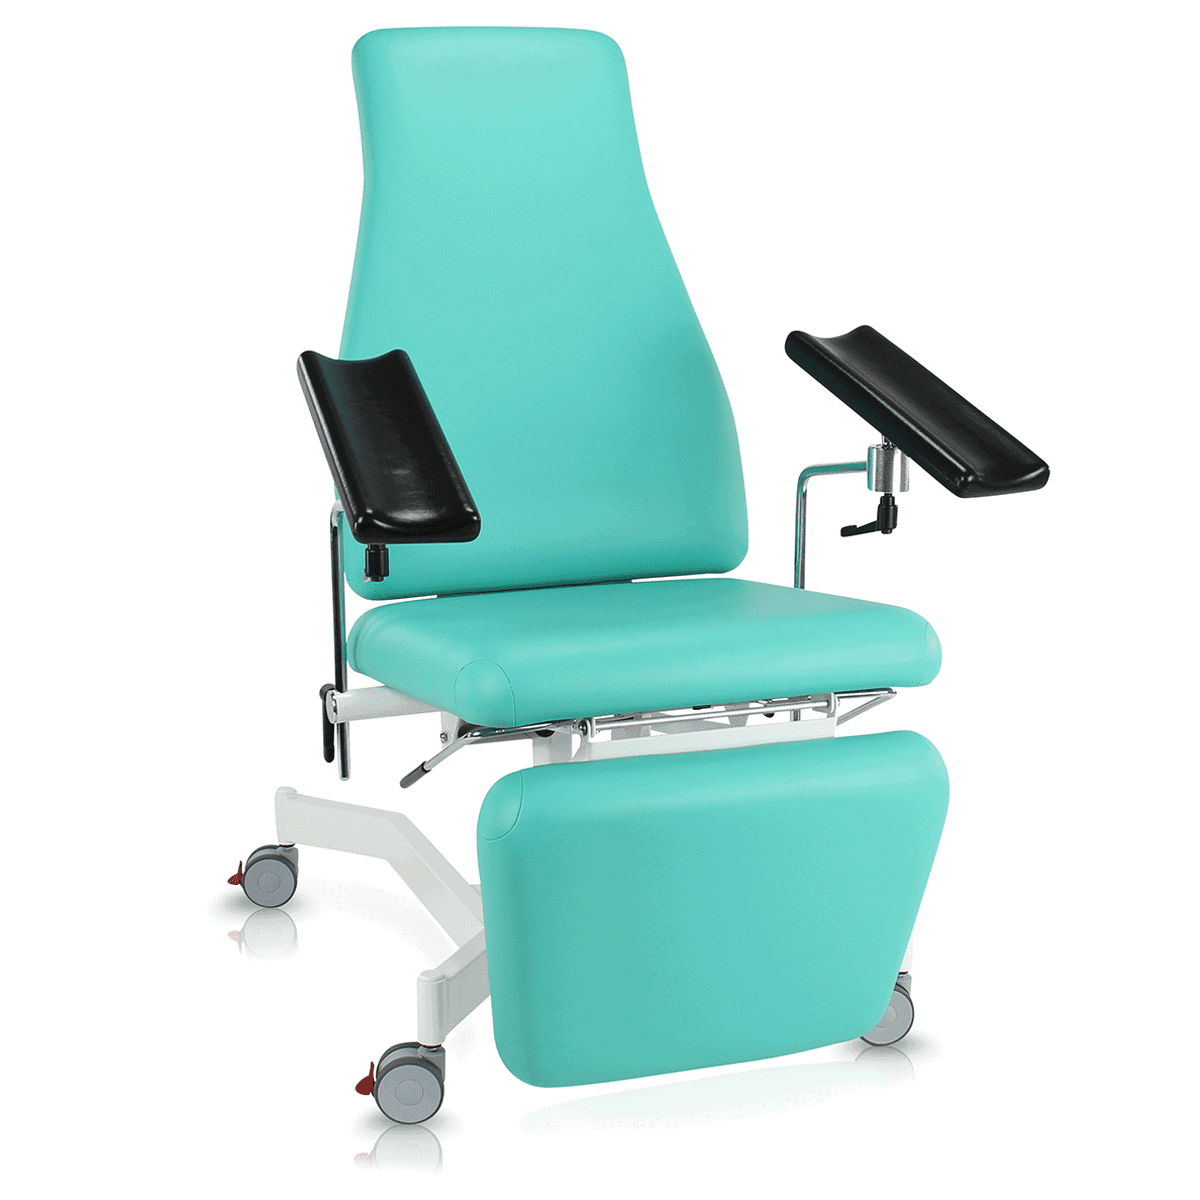 Agile Medical Phlebotomy Chair Front View